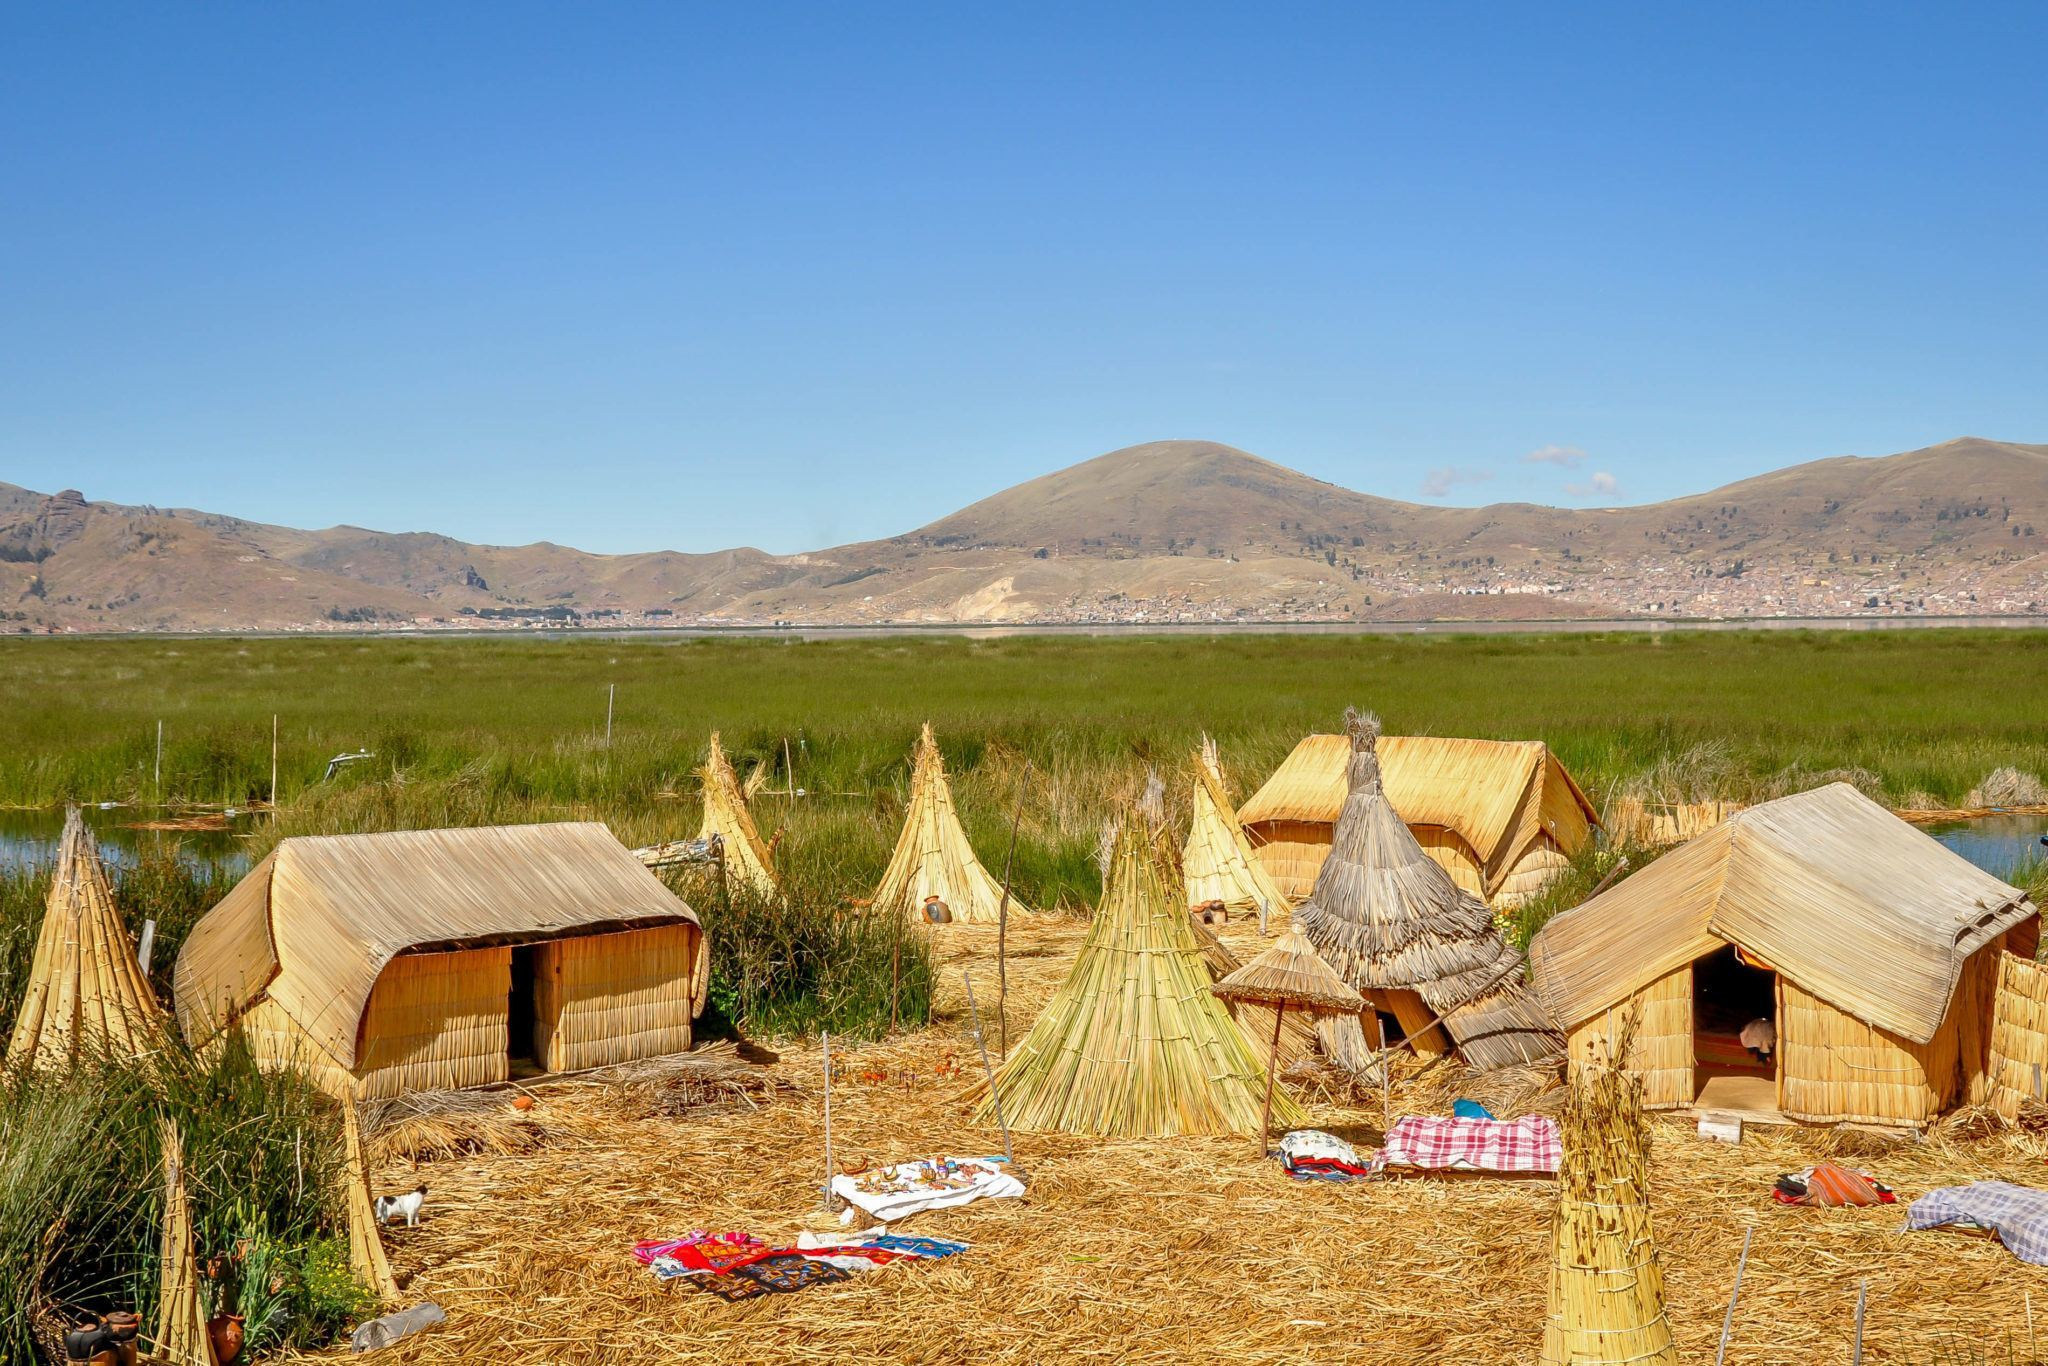 Community on the floating Uros Islands in Lake Titicaca